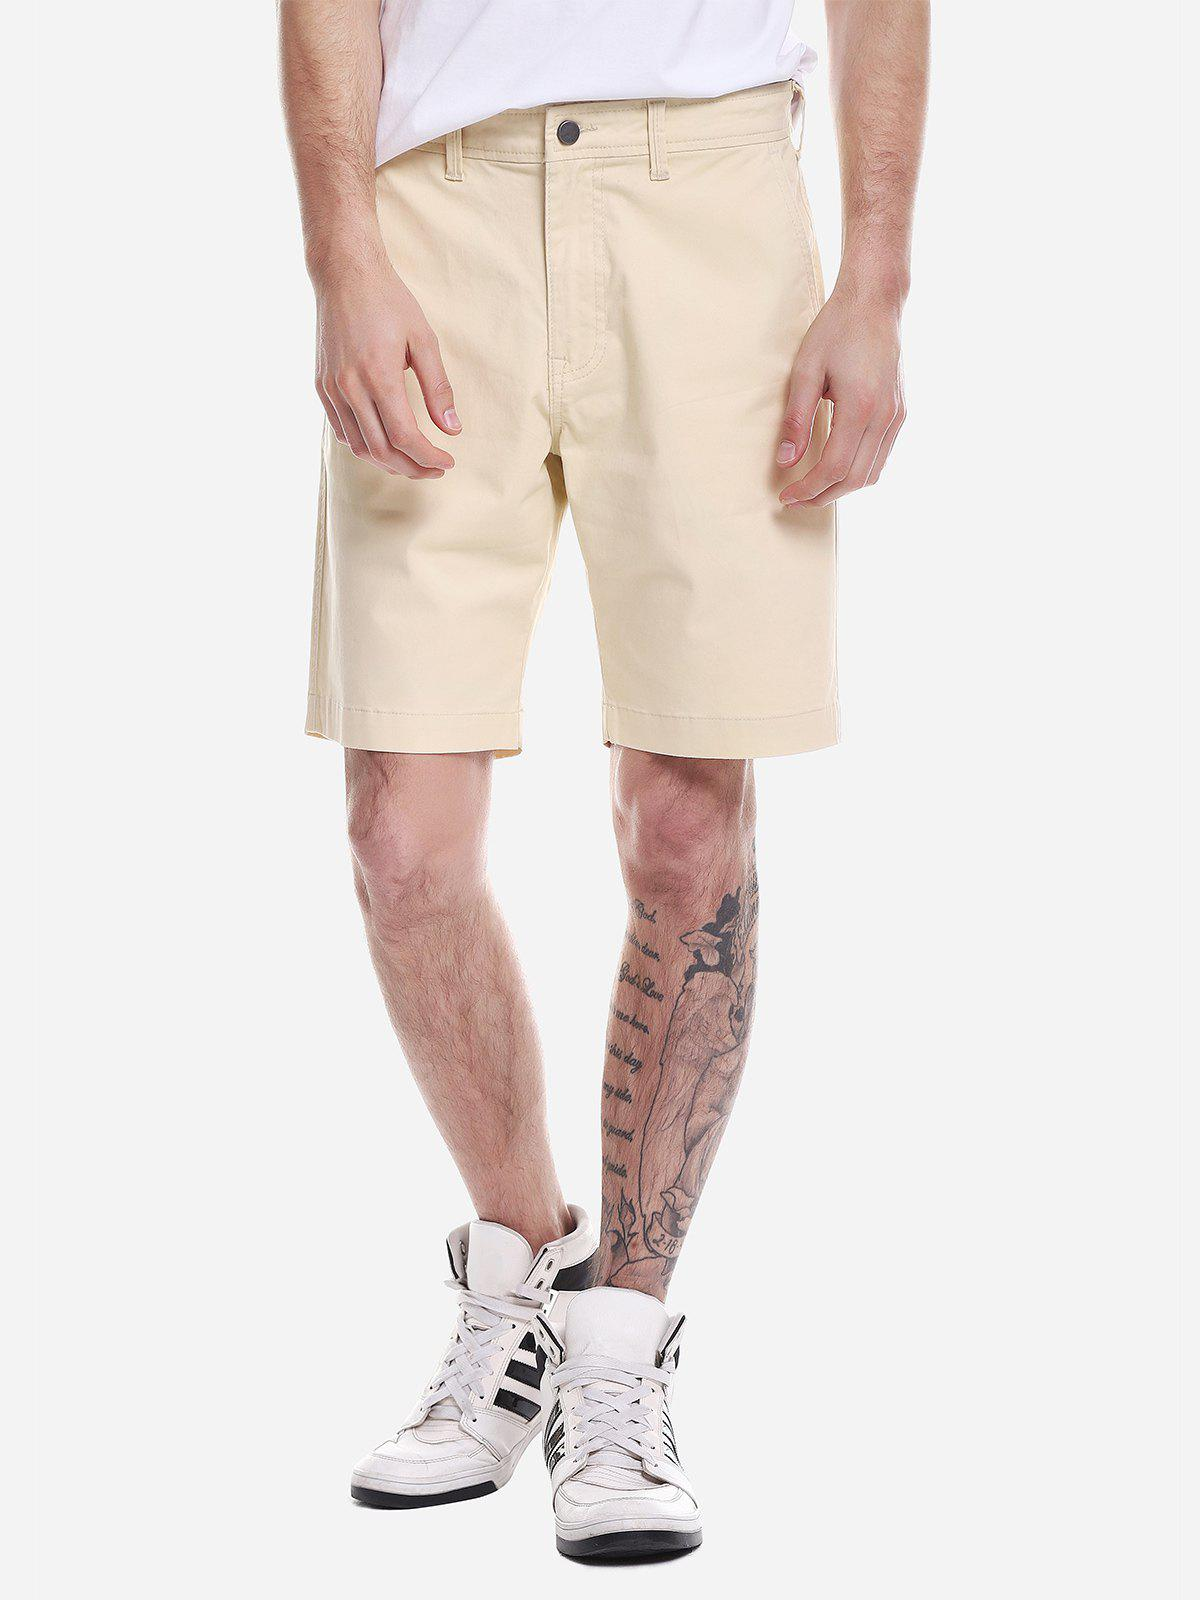 Best Zip Fly Shorts